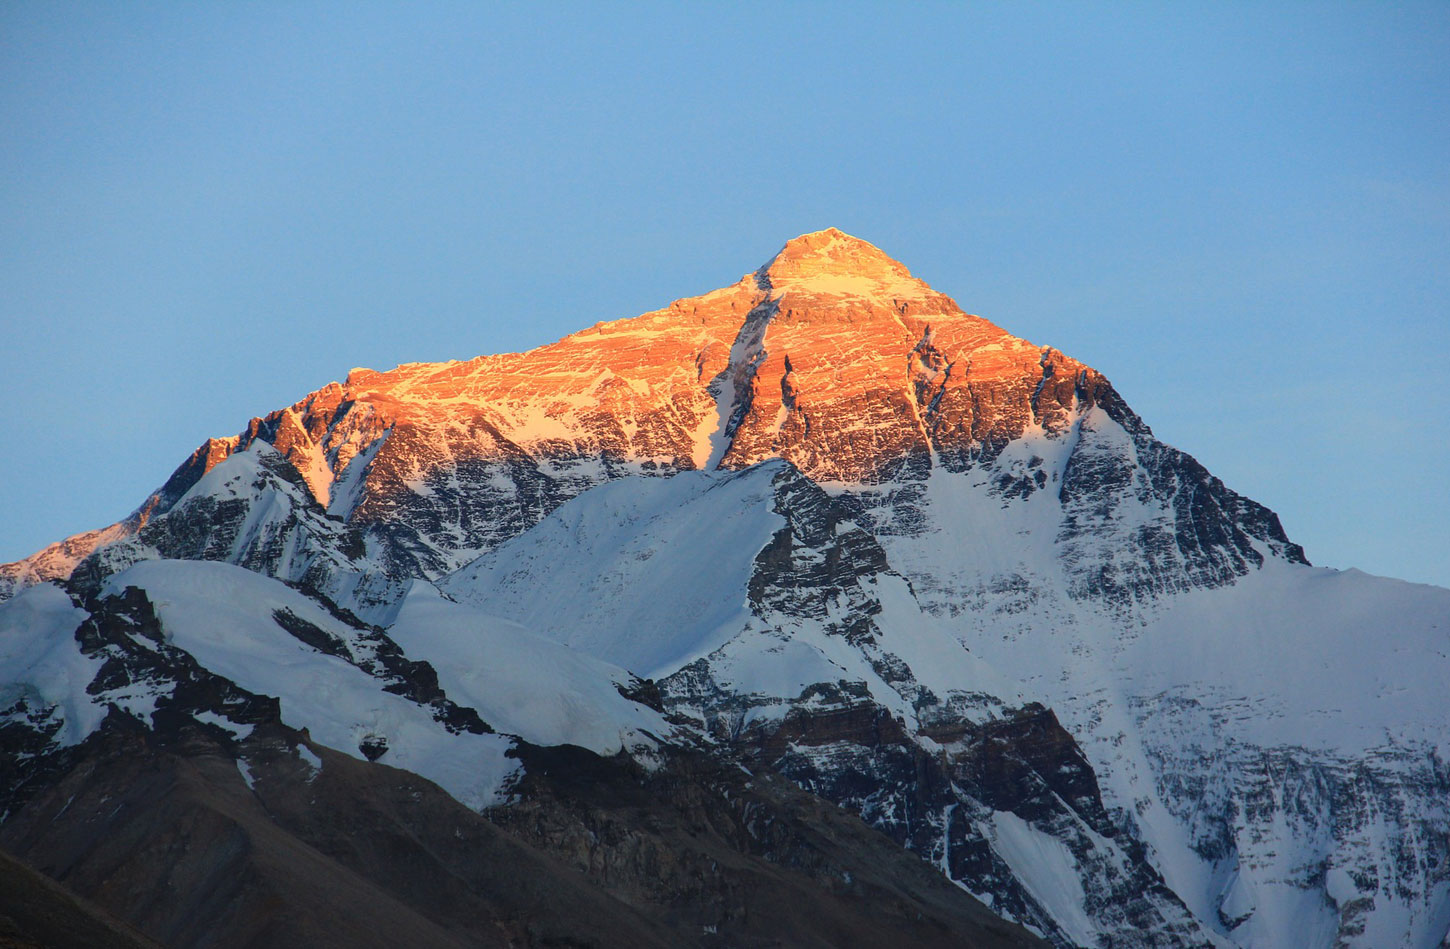 essay on mount everest everest by scott spires bull org a journal  everest by scott spires bull org a journal of the built everest by scott spires